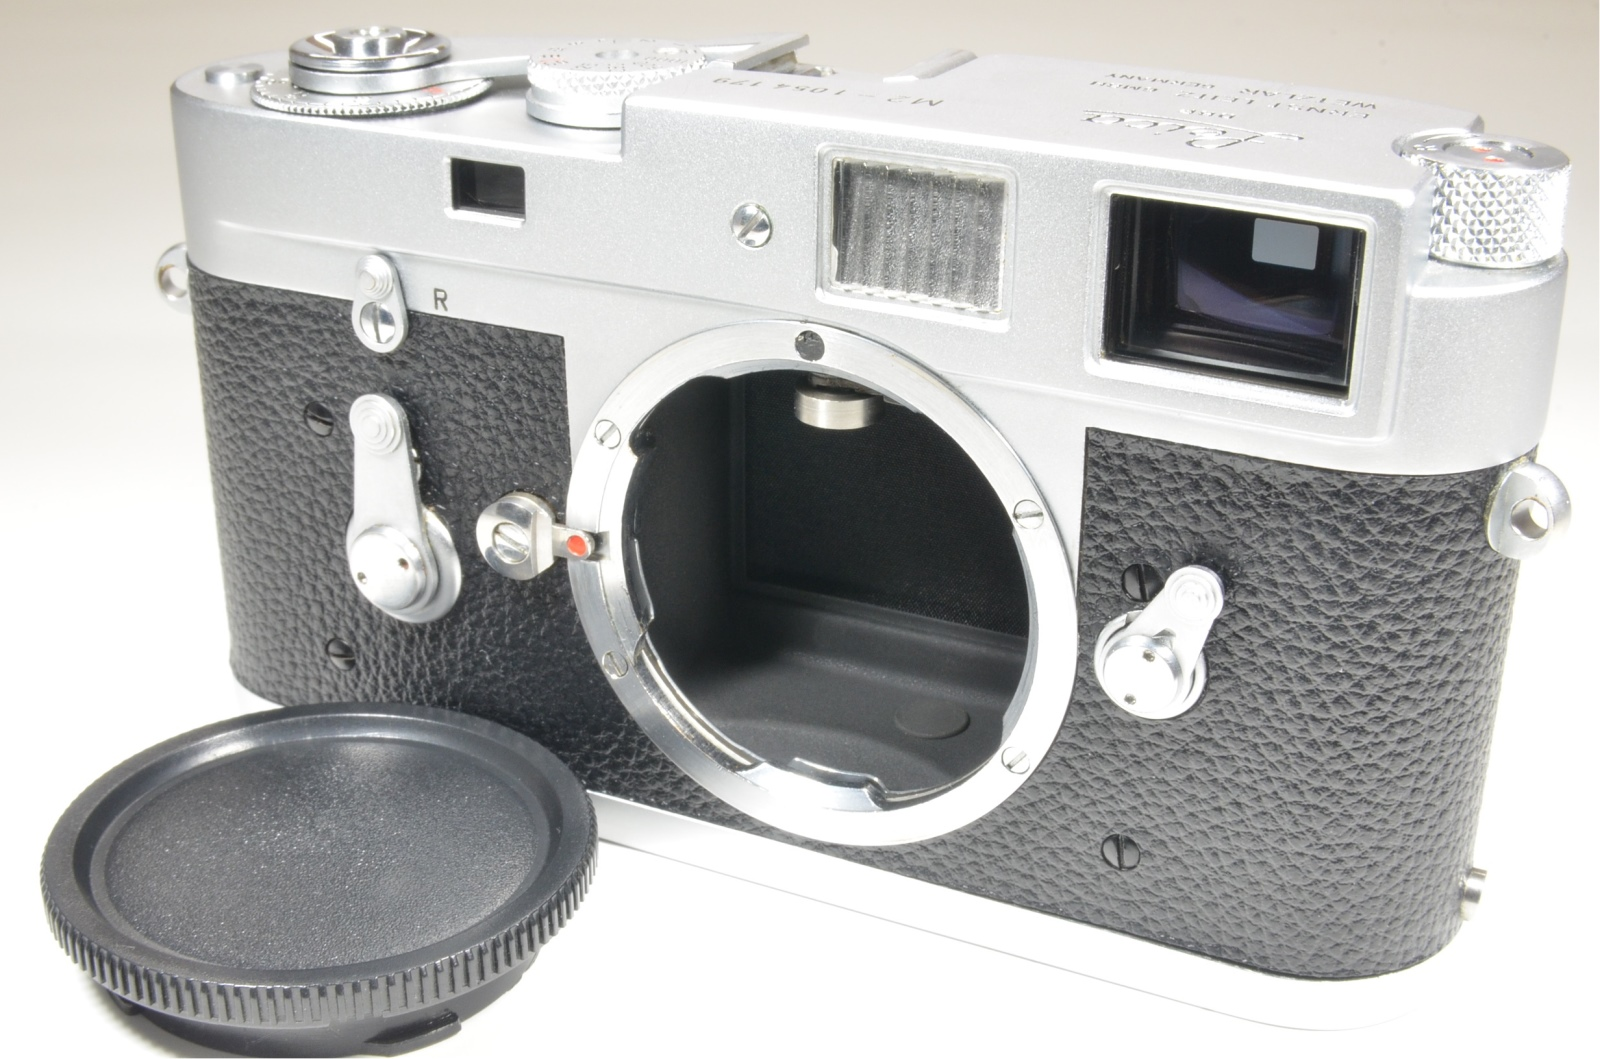 leica m2 self timer rangefinder film camera s/n 1054179 year 1962